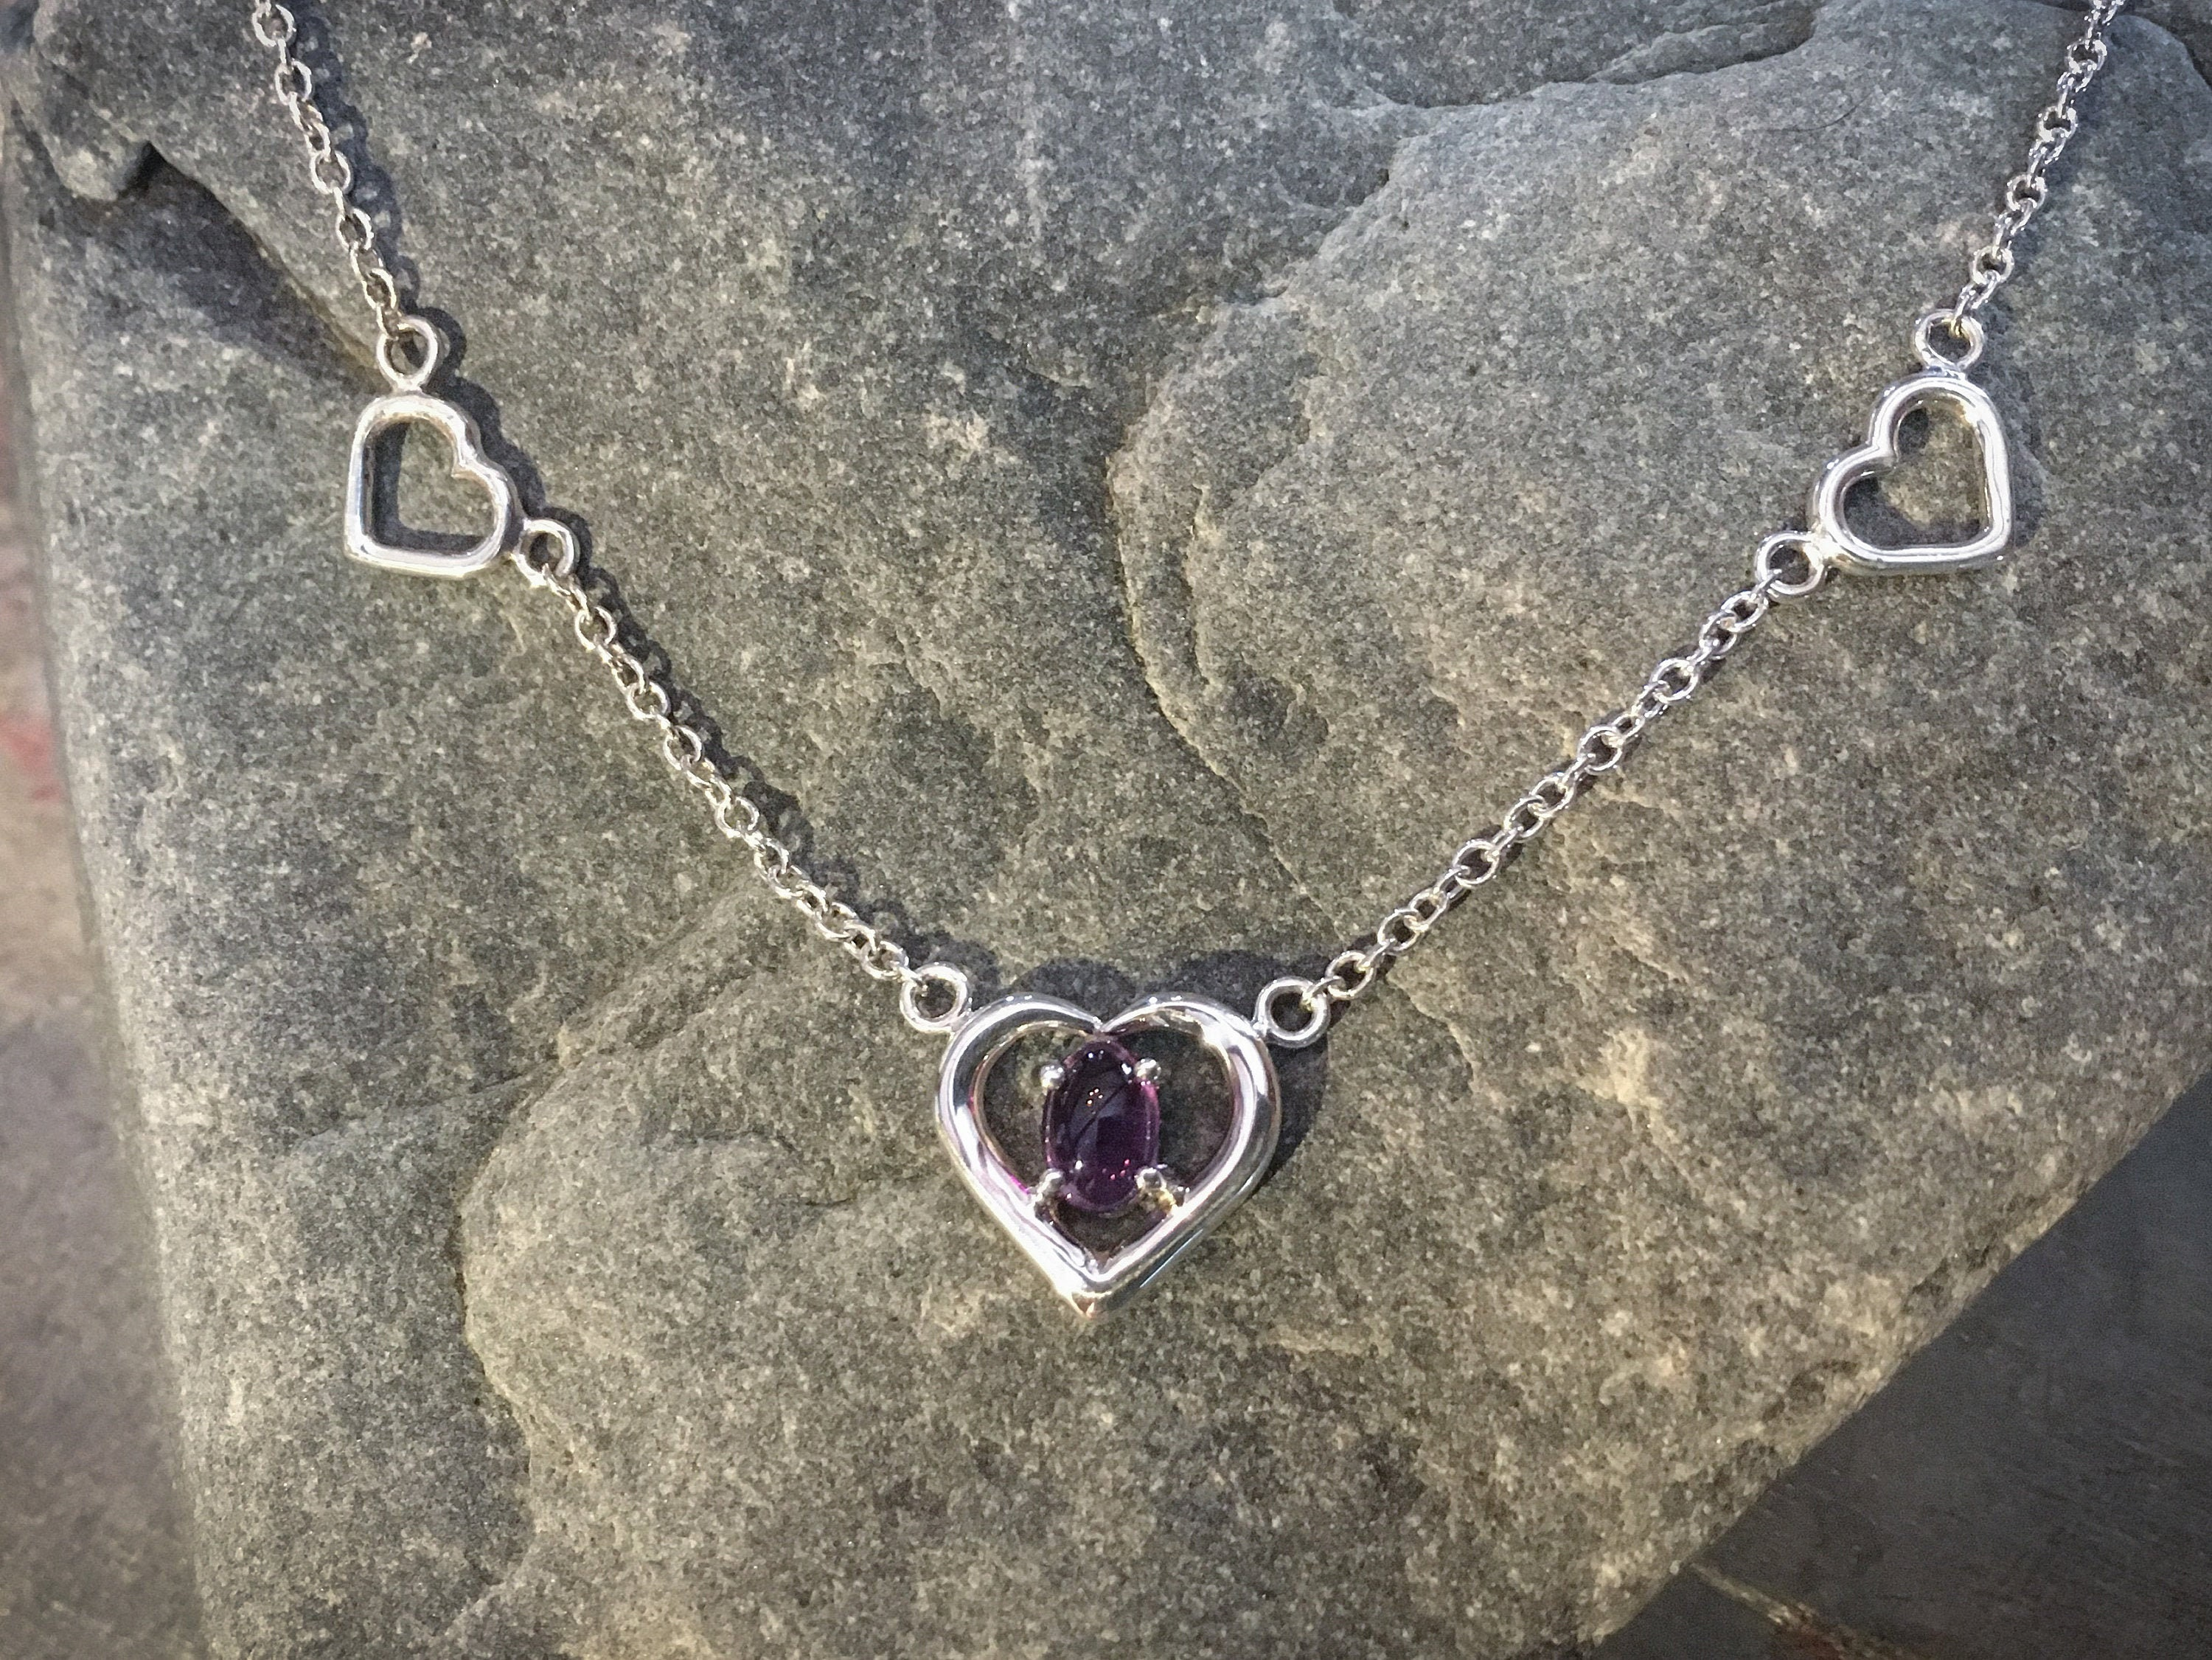 Three Hearts Amethyst Necklace in solid Sterling Silver - ONLY ONE MADE! - A fine anniversary gift, gift for wife or gift for girlfriend.